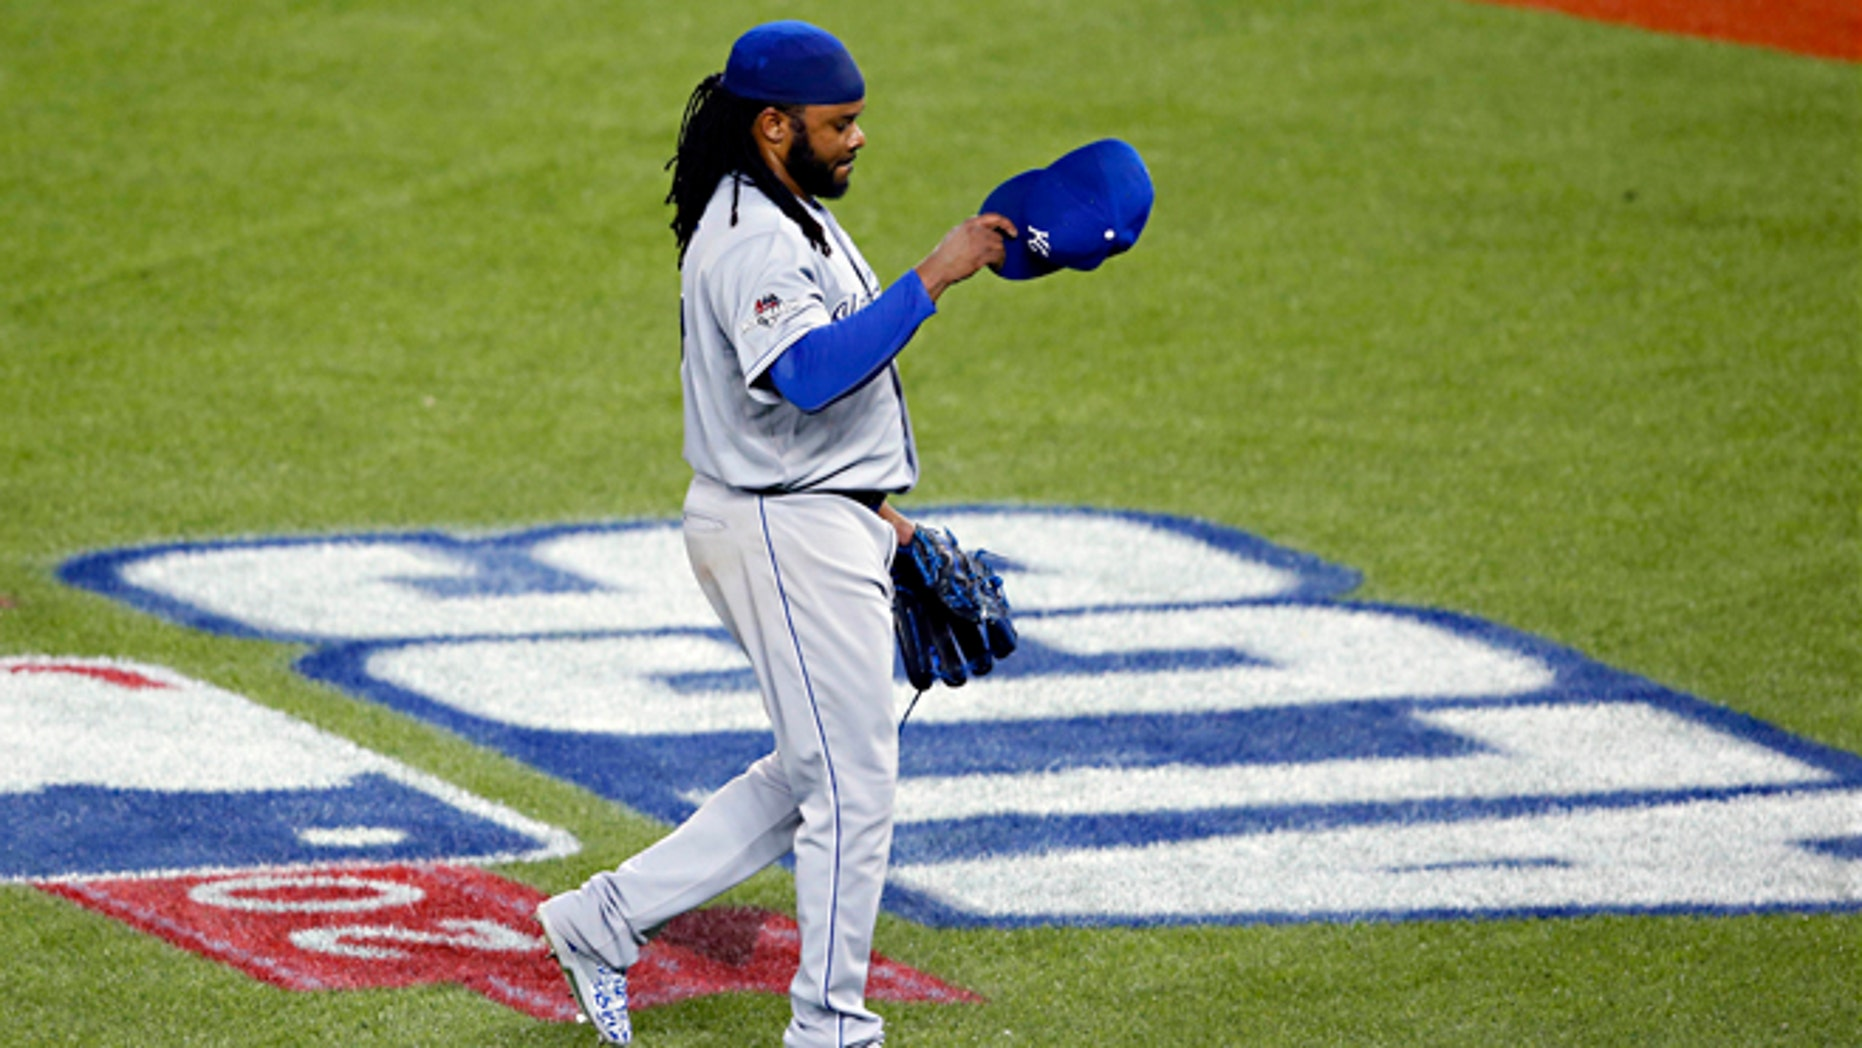 Kansas City Royals starting pitcher Johnny Cueto leaves the game against the Toronto Blue Jays during the third inning in Game 3 of baseball's American League Championship Series on Monday, Oct. 19, 2015, in Toronto. (AP Photo/Paul Sancya)